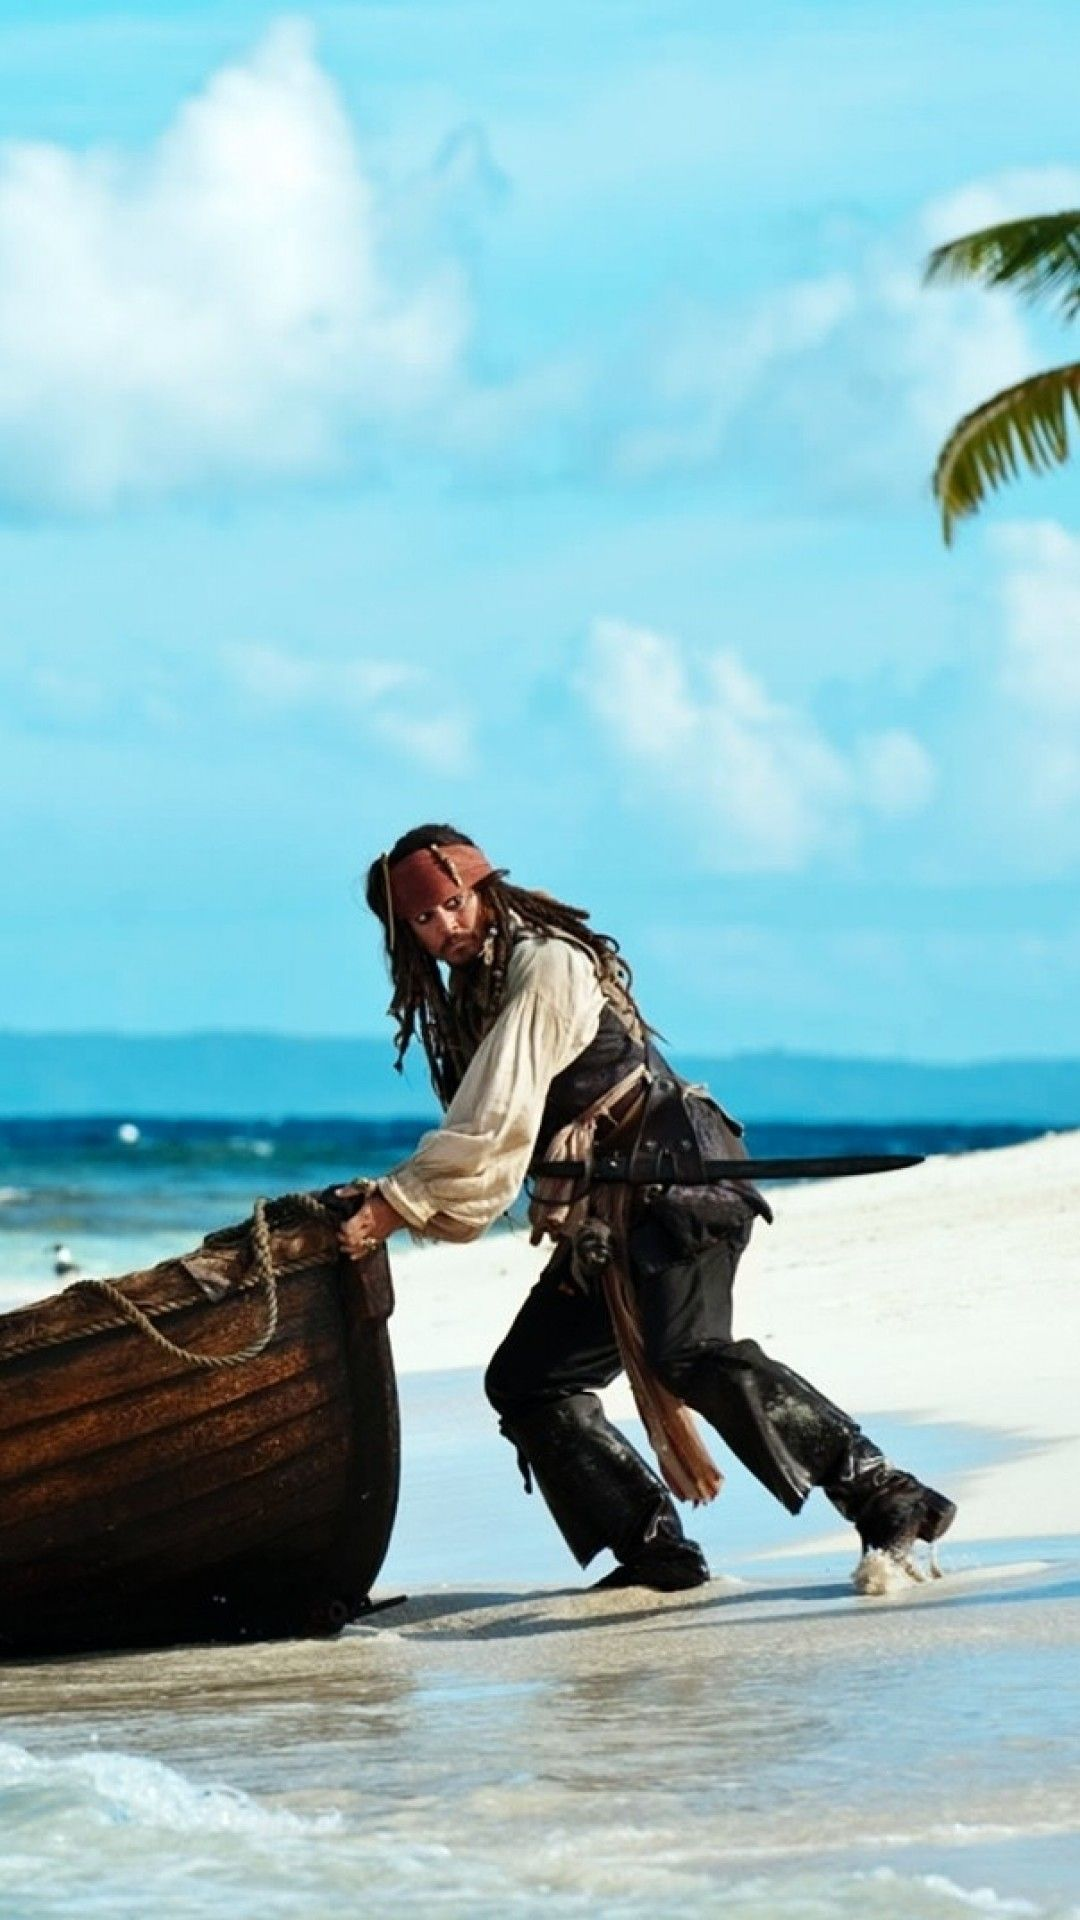 Pirates Of The Caribbean Wallpaper 73 Images Wallpaper Iphone Disney Movie Wallpapers Best Iphone Wallpapers